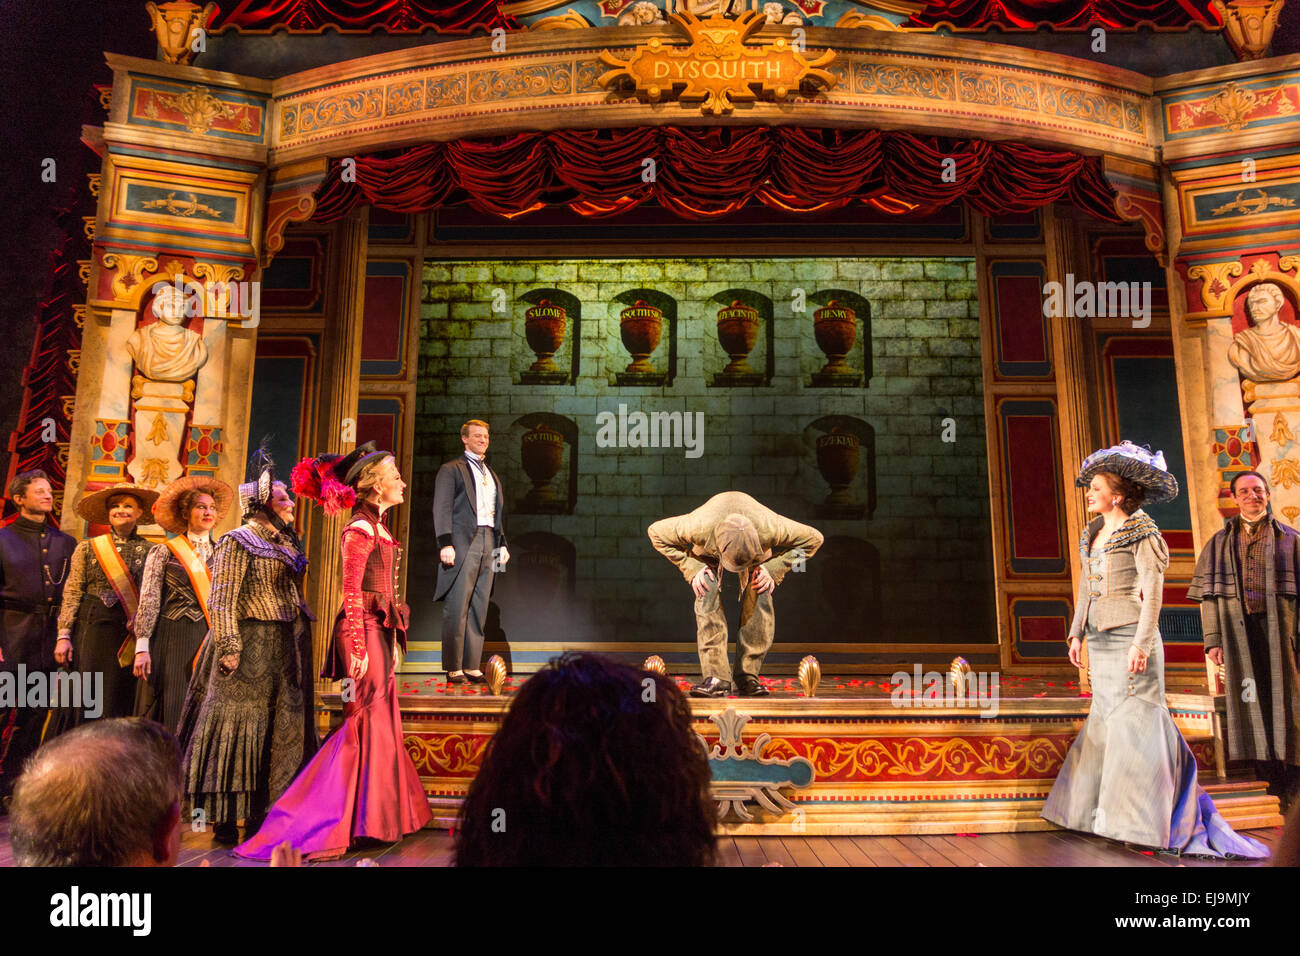 Curtain call, A Gentleman's Guide to Love & Murder, Walter Kerr Theater, Broadway, New York, USA - Stock Image